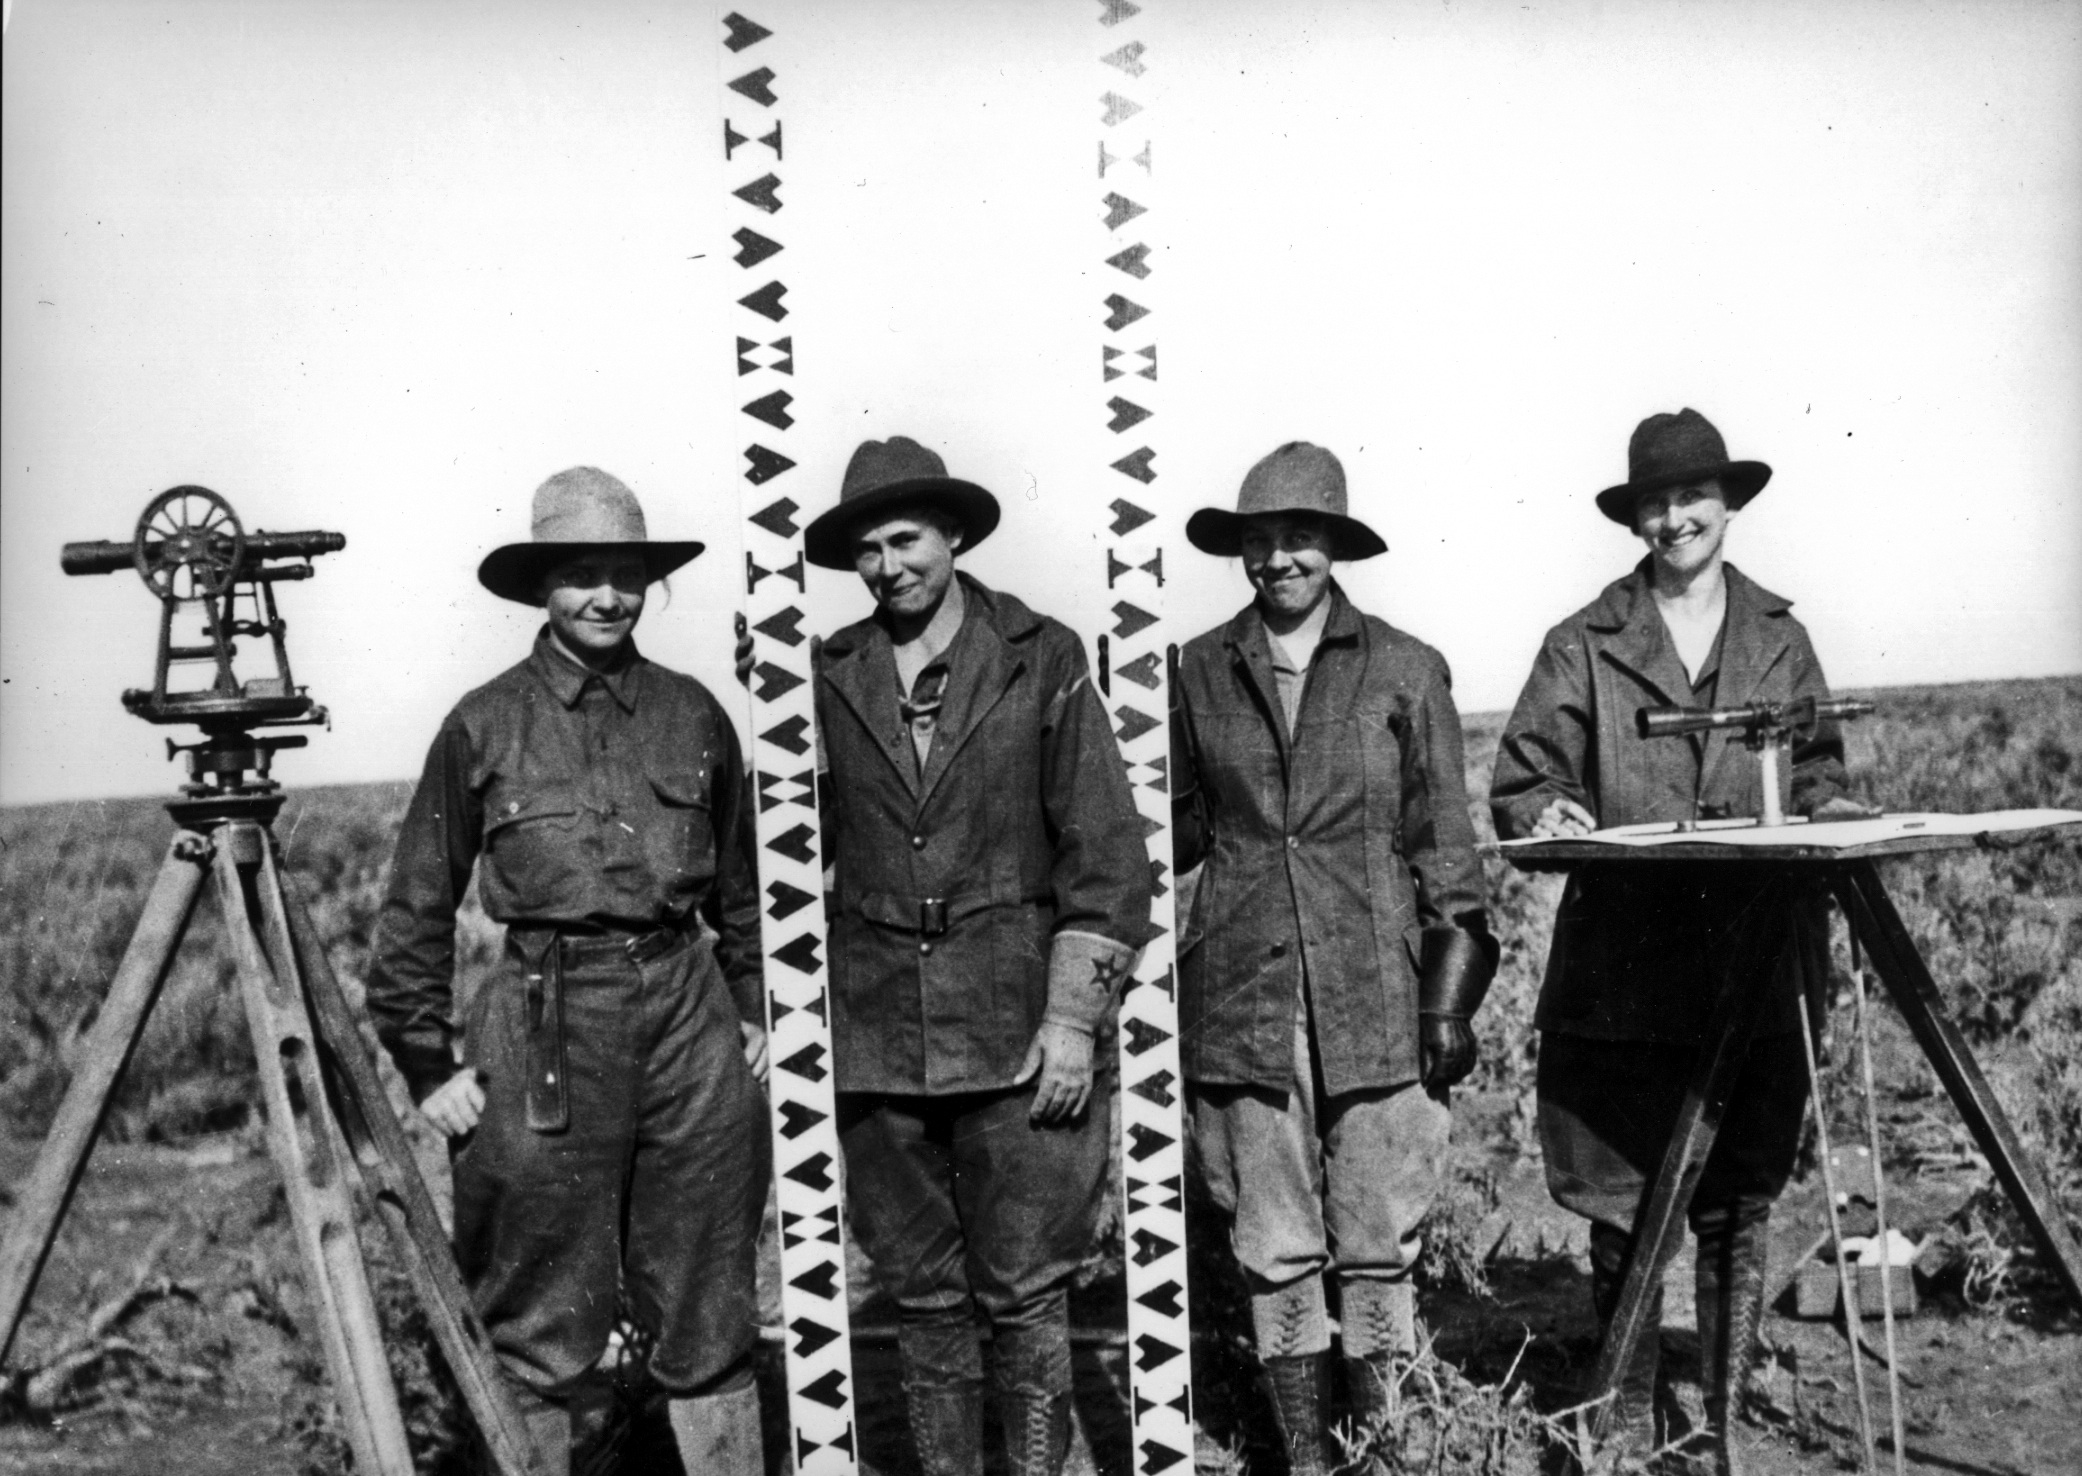 Minidoka Project, Idaho 1918. Photo from the U.S. Bureau of Reclamation, of the U.S. Department of the Interior